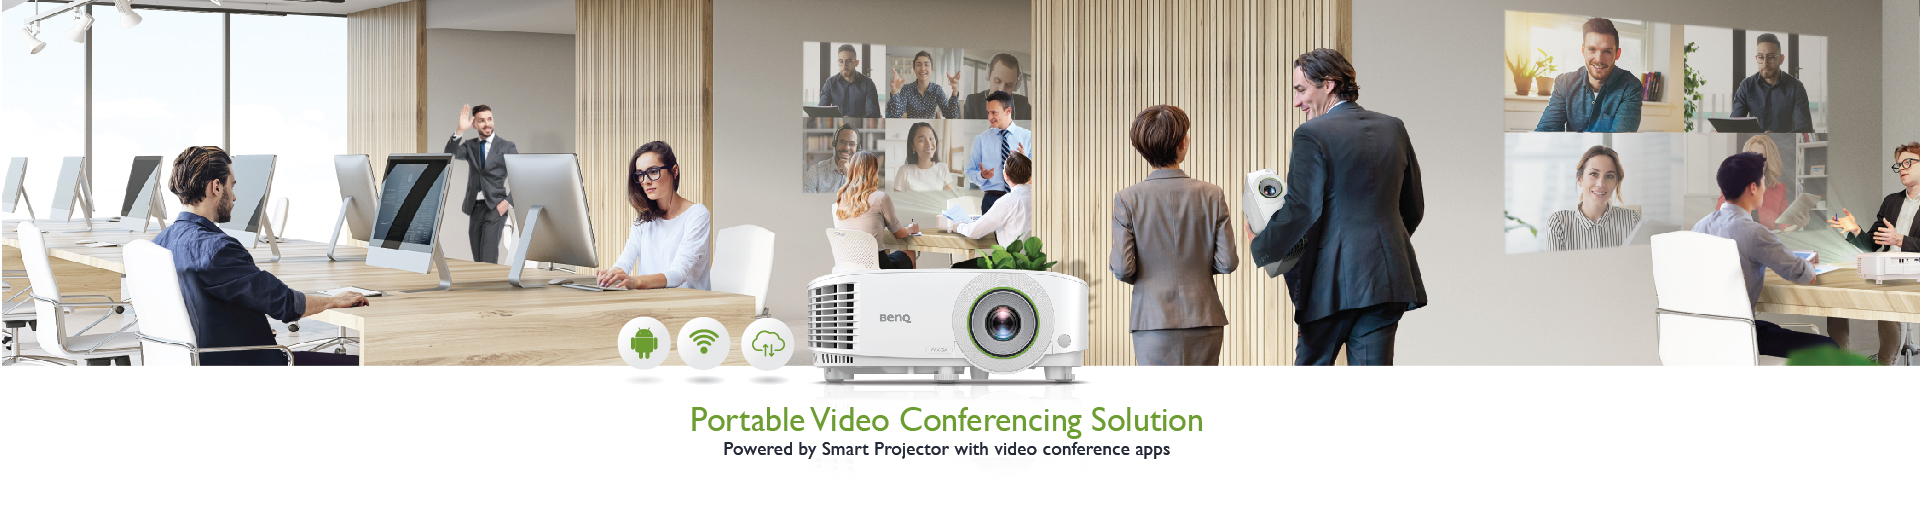 BenQ Portable Video Conference Solution